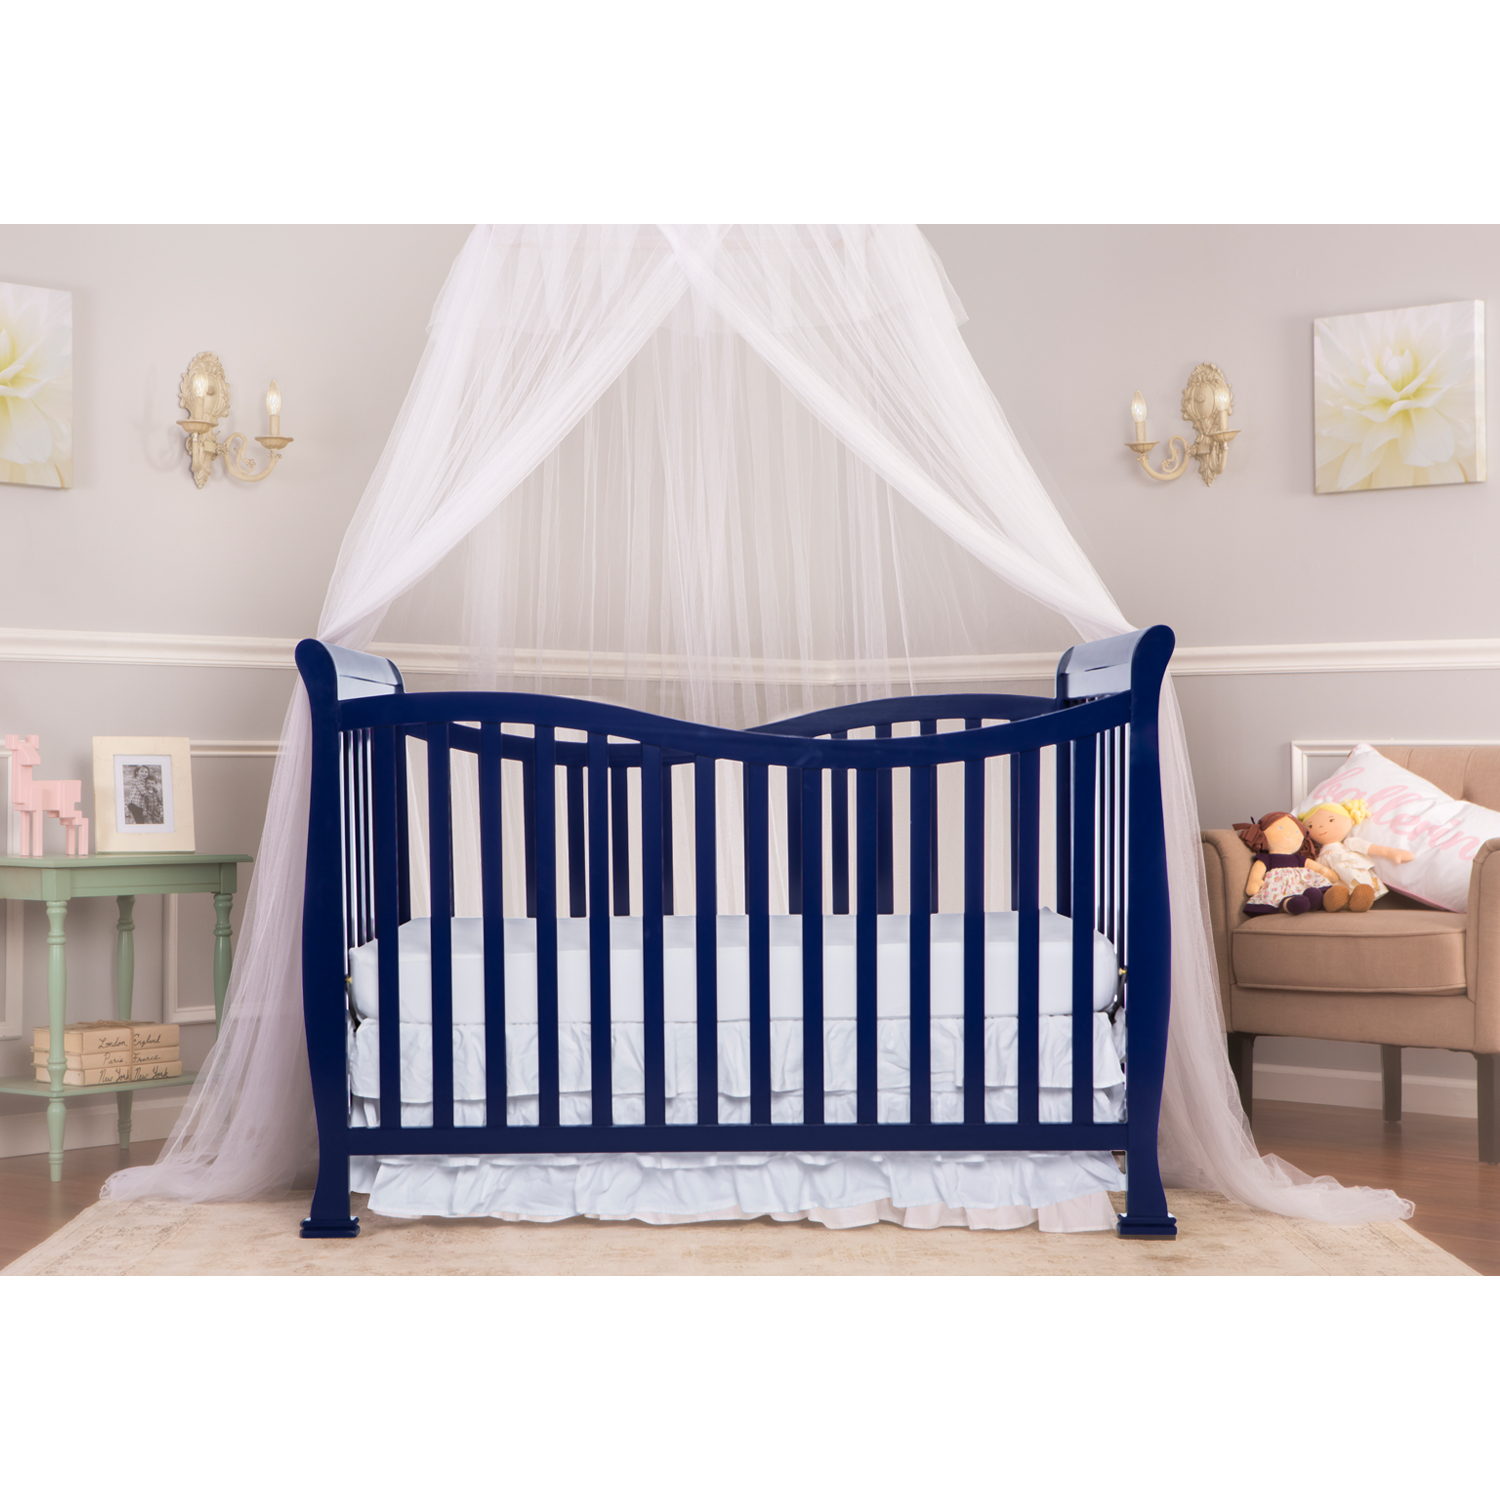 Violet 7 In 1 Convertible Life Style Crib Dream On Me